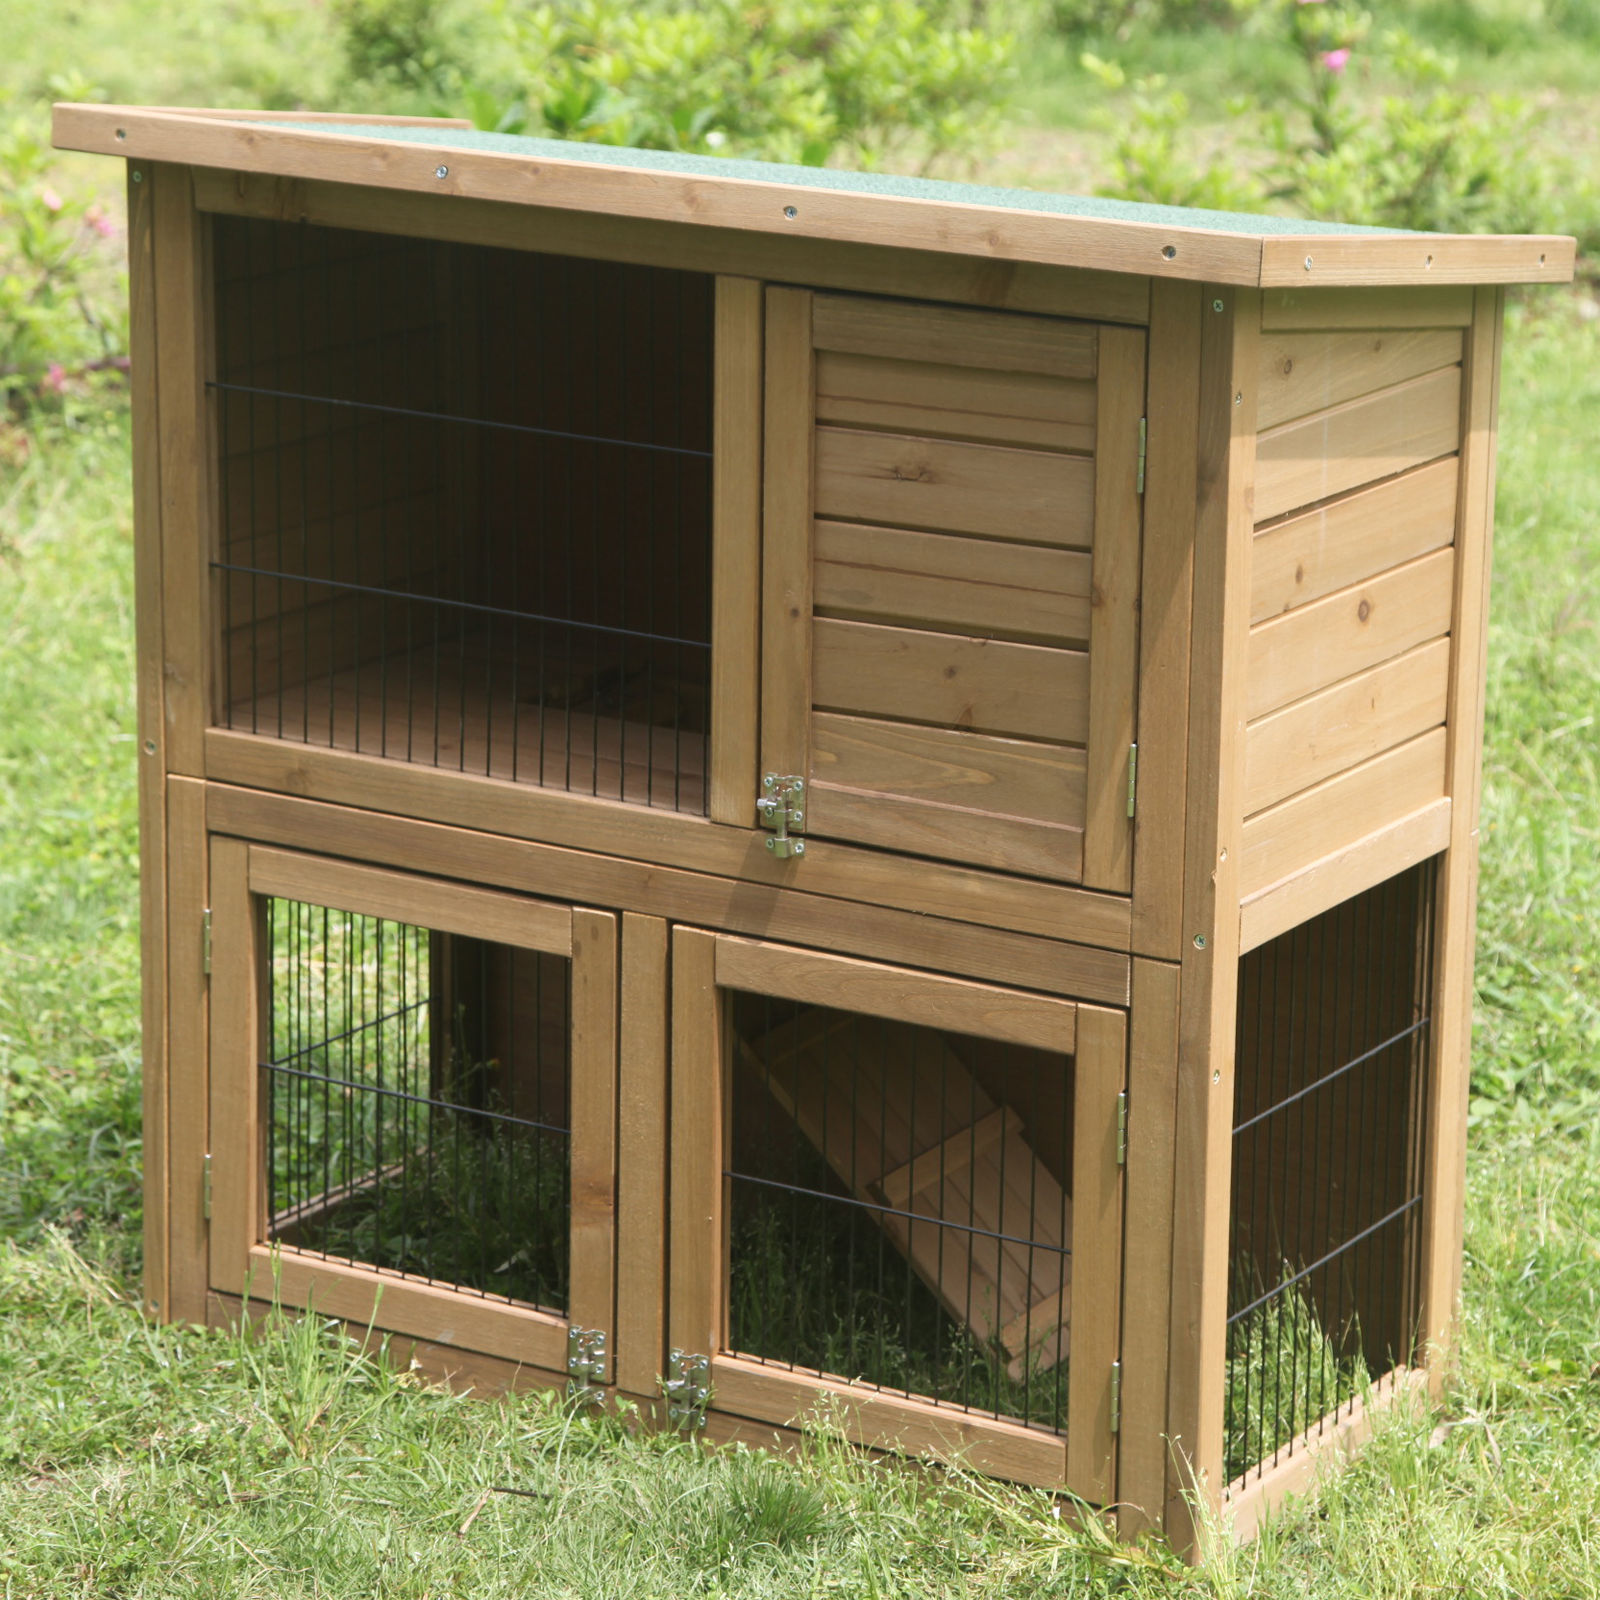 rabbit hutches and runs guinea pig house ferret cages. Black Bedroom Furniture Sets. Home Design Ideas